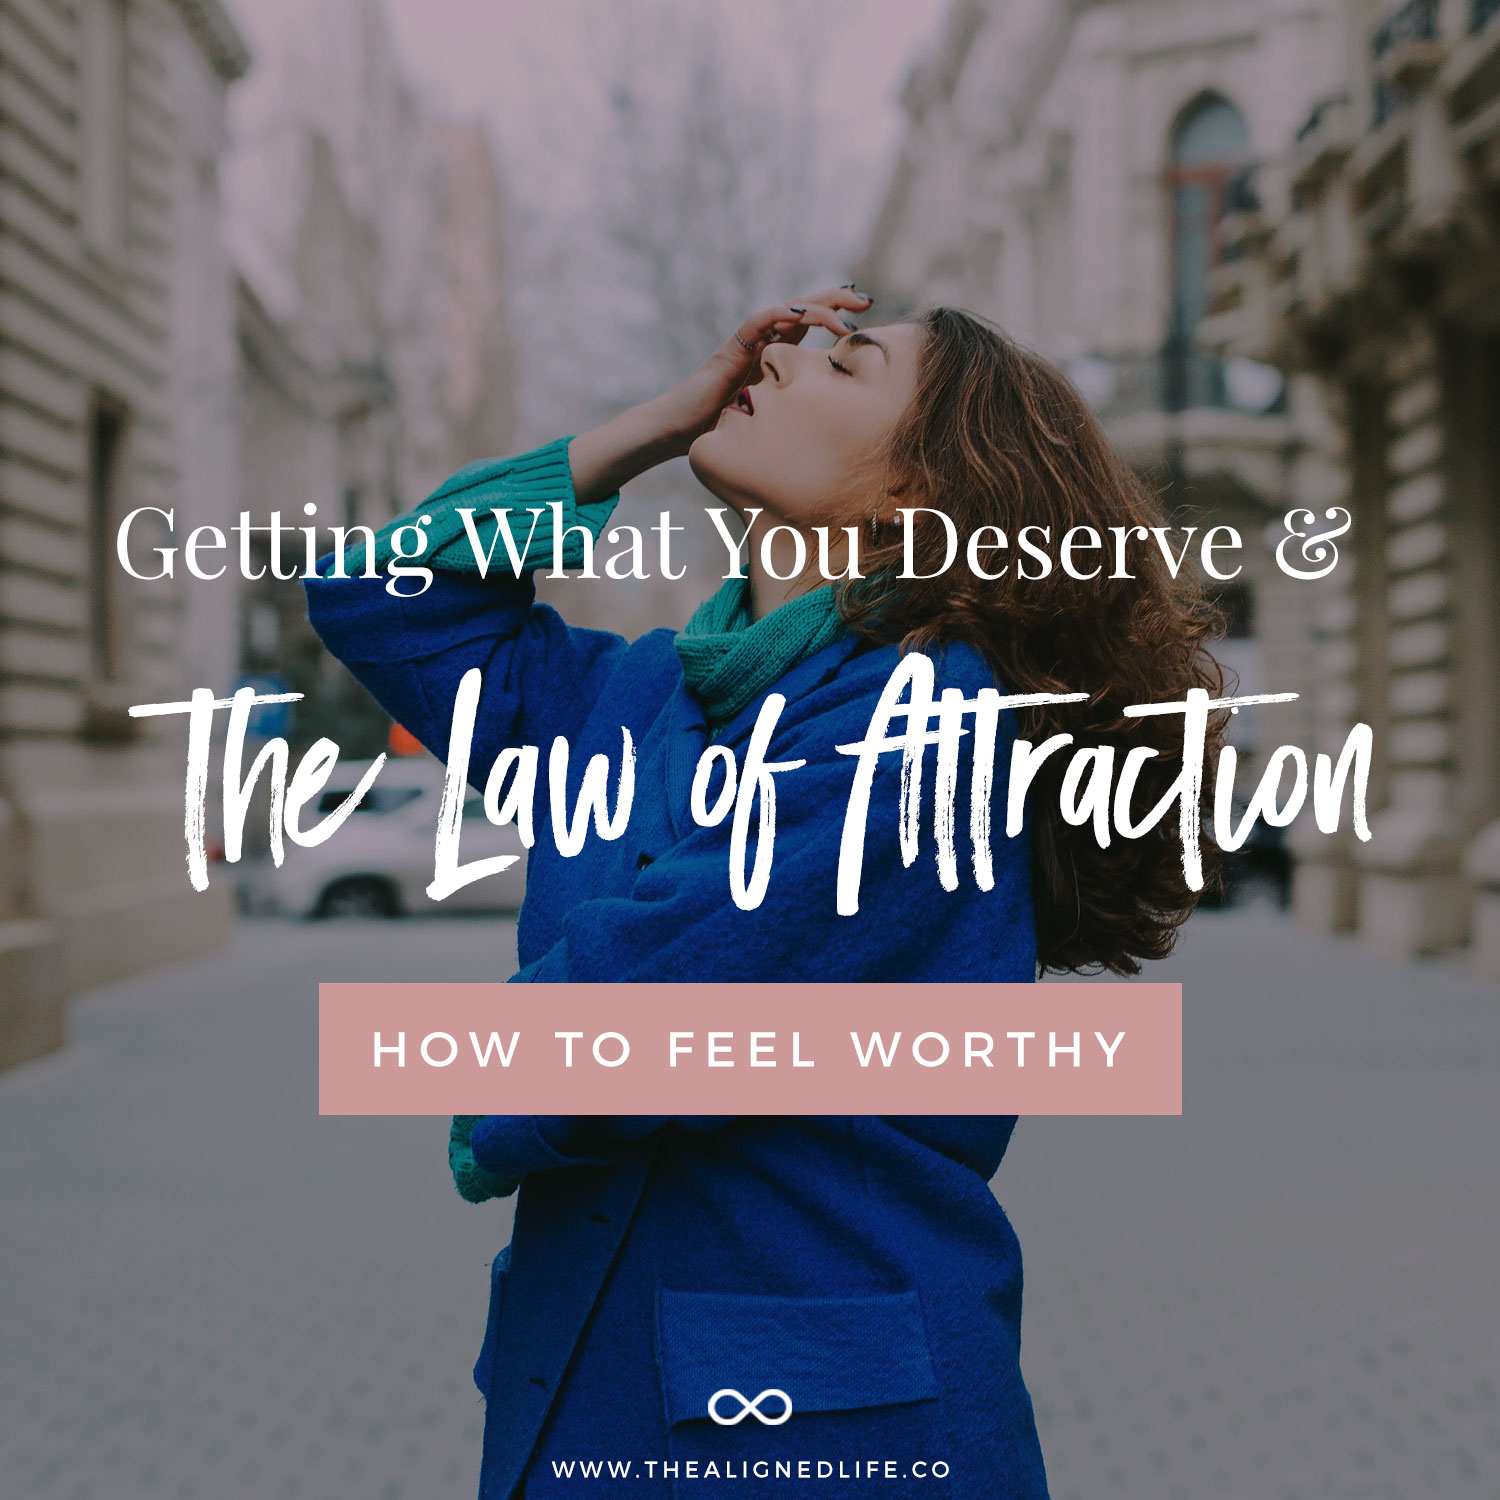 Getting What You Deserve & The Law of Attraction